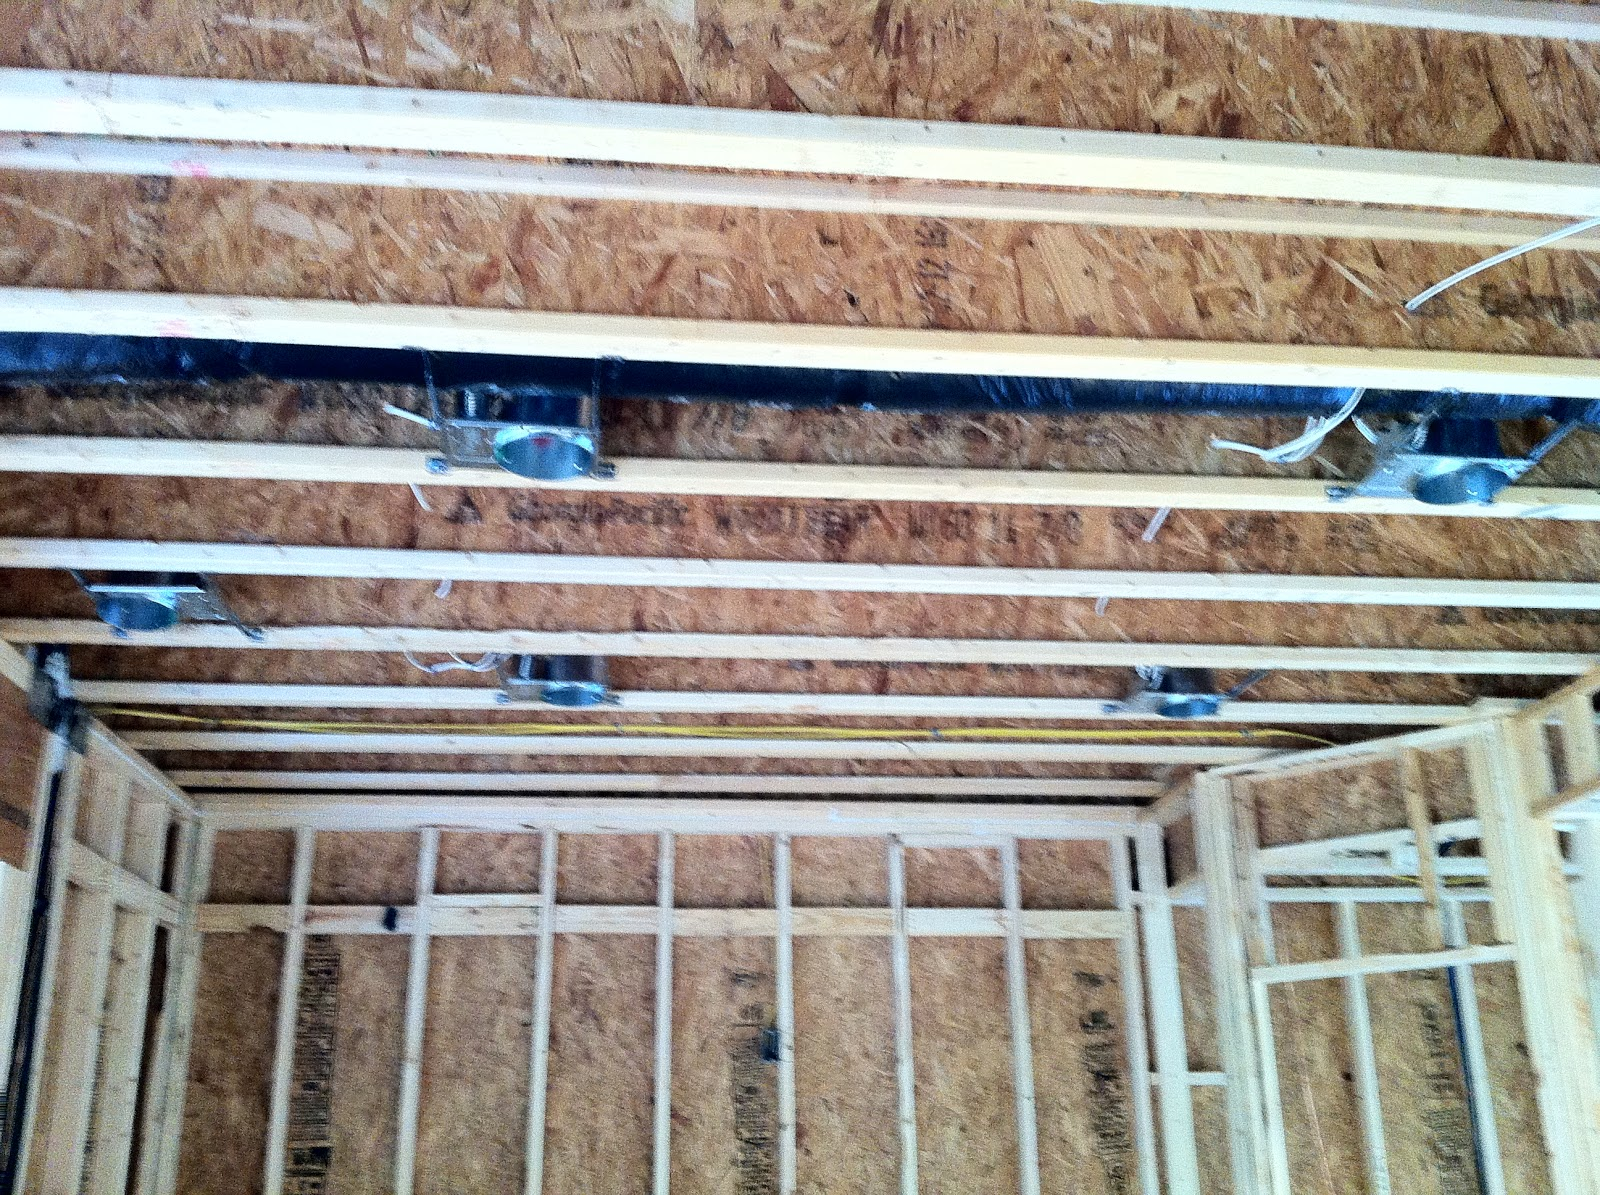 That S Right It S Another Verona Hvac Plumbing And